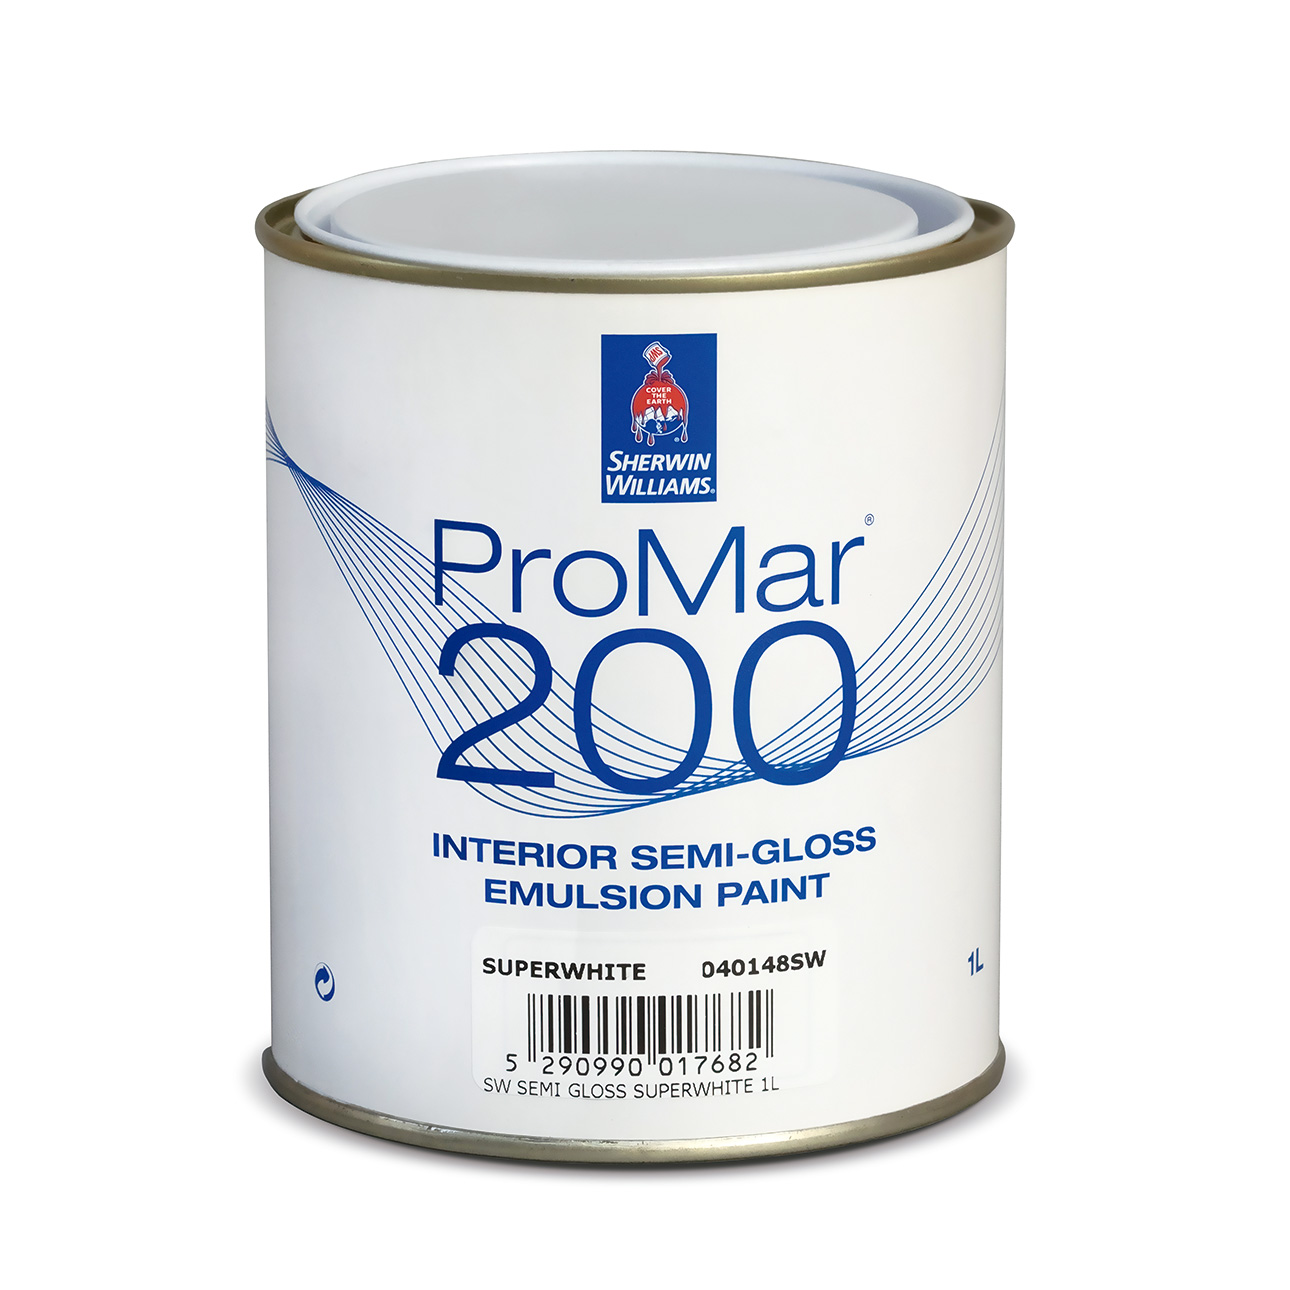 SHERWIN-WILLIAMS® PROMAR® 200 SEMI-GLOSS EMULSION EXTRA WHITE 1L